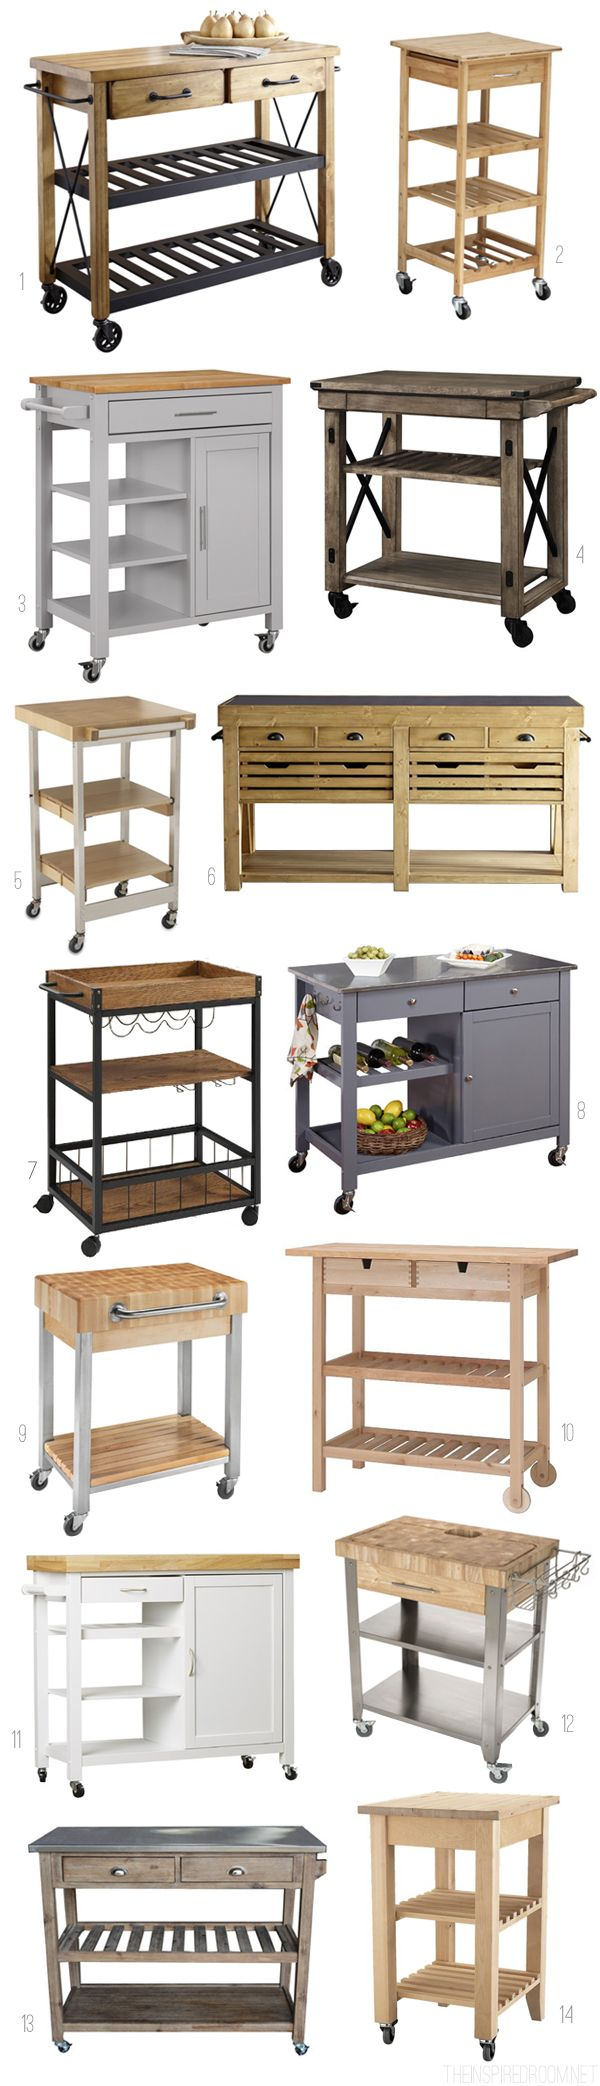 Freestanding Islands and Kitchen Carts - Round Up by The Inspired Room